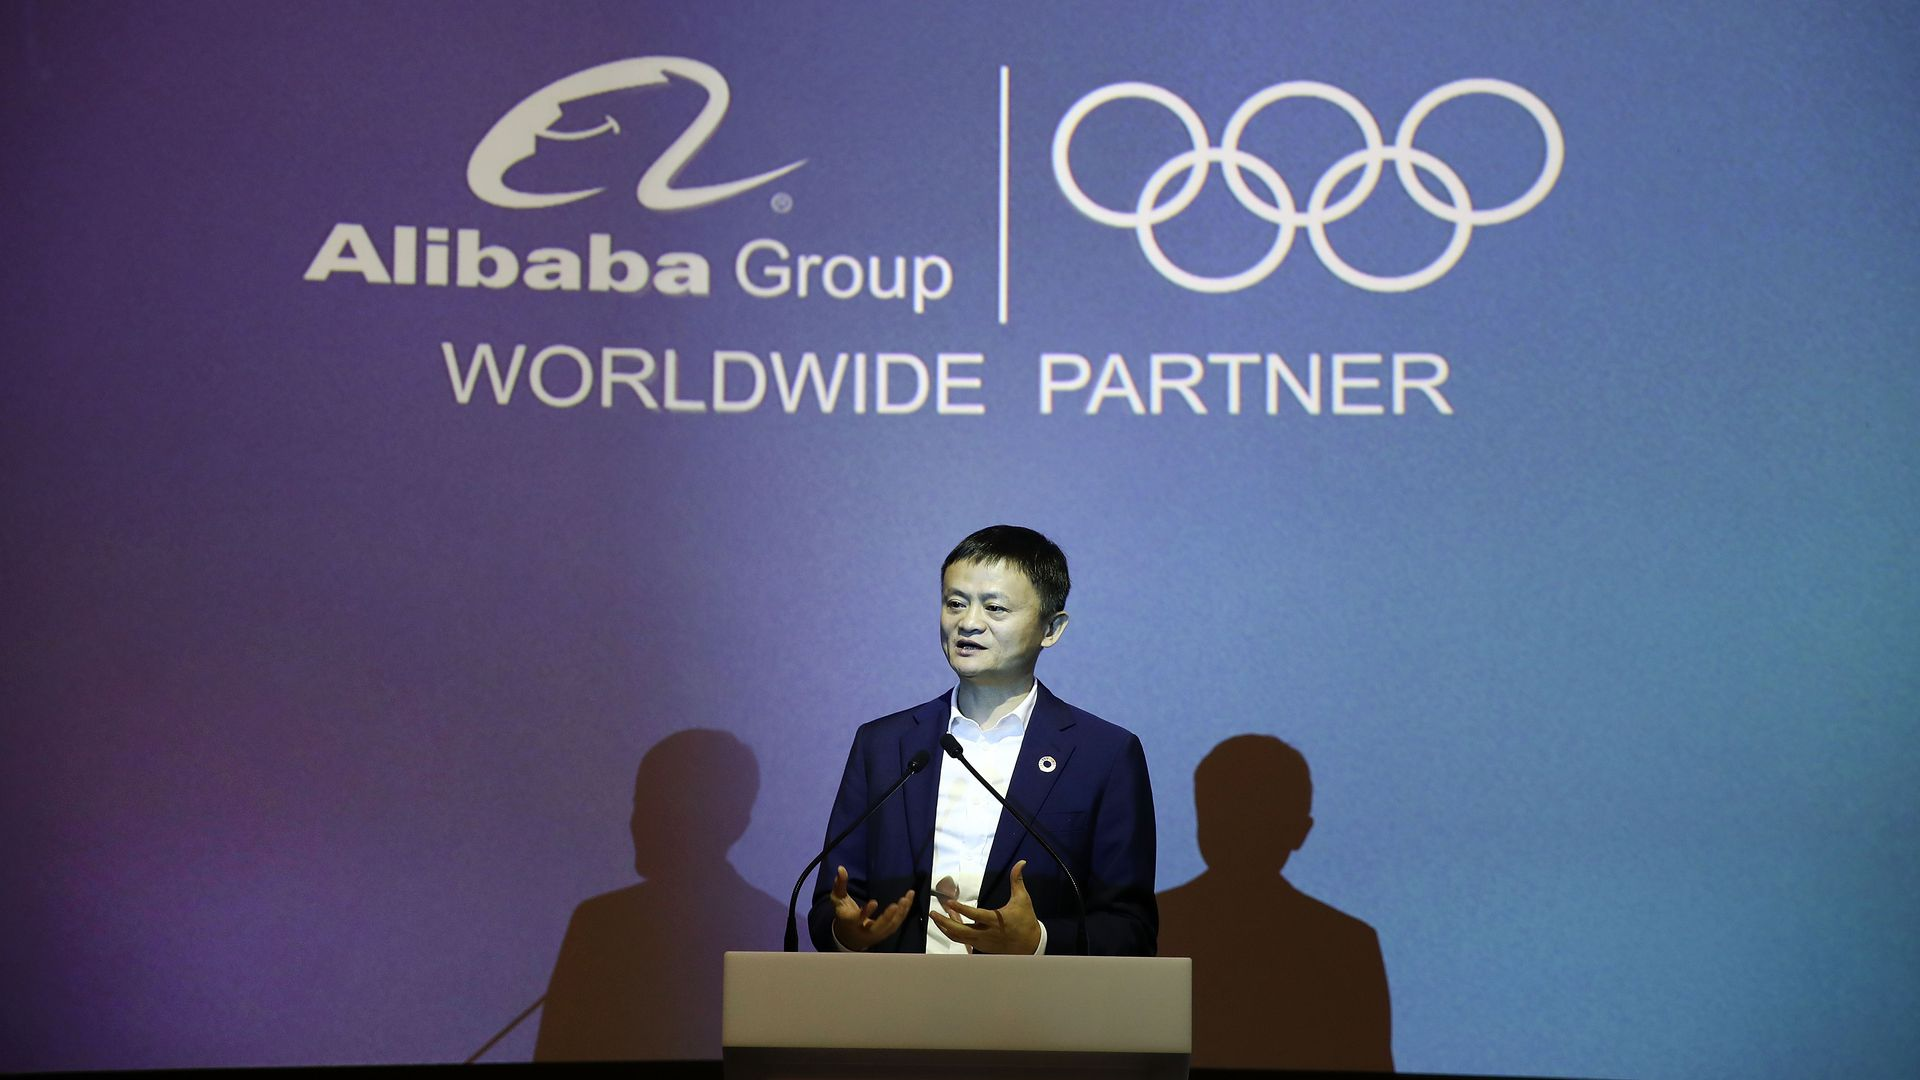 Alibaba Group Executive Chairman Jack Ma speaks at the unveiling of the Alibaba Showcase at the PyeongChang 2018 Winter Olympic Games on February 10, 2018 in Gangneung, South Korea.